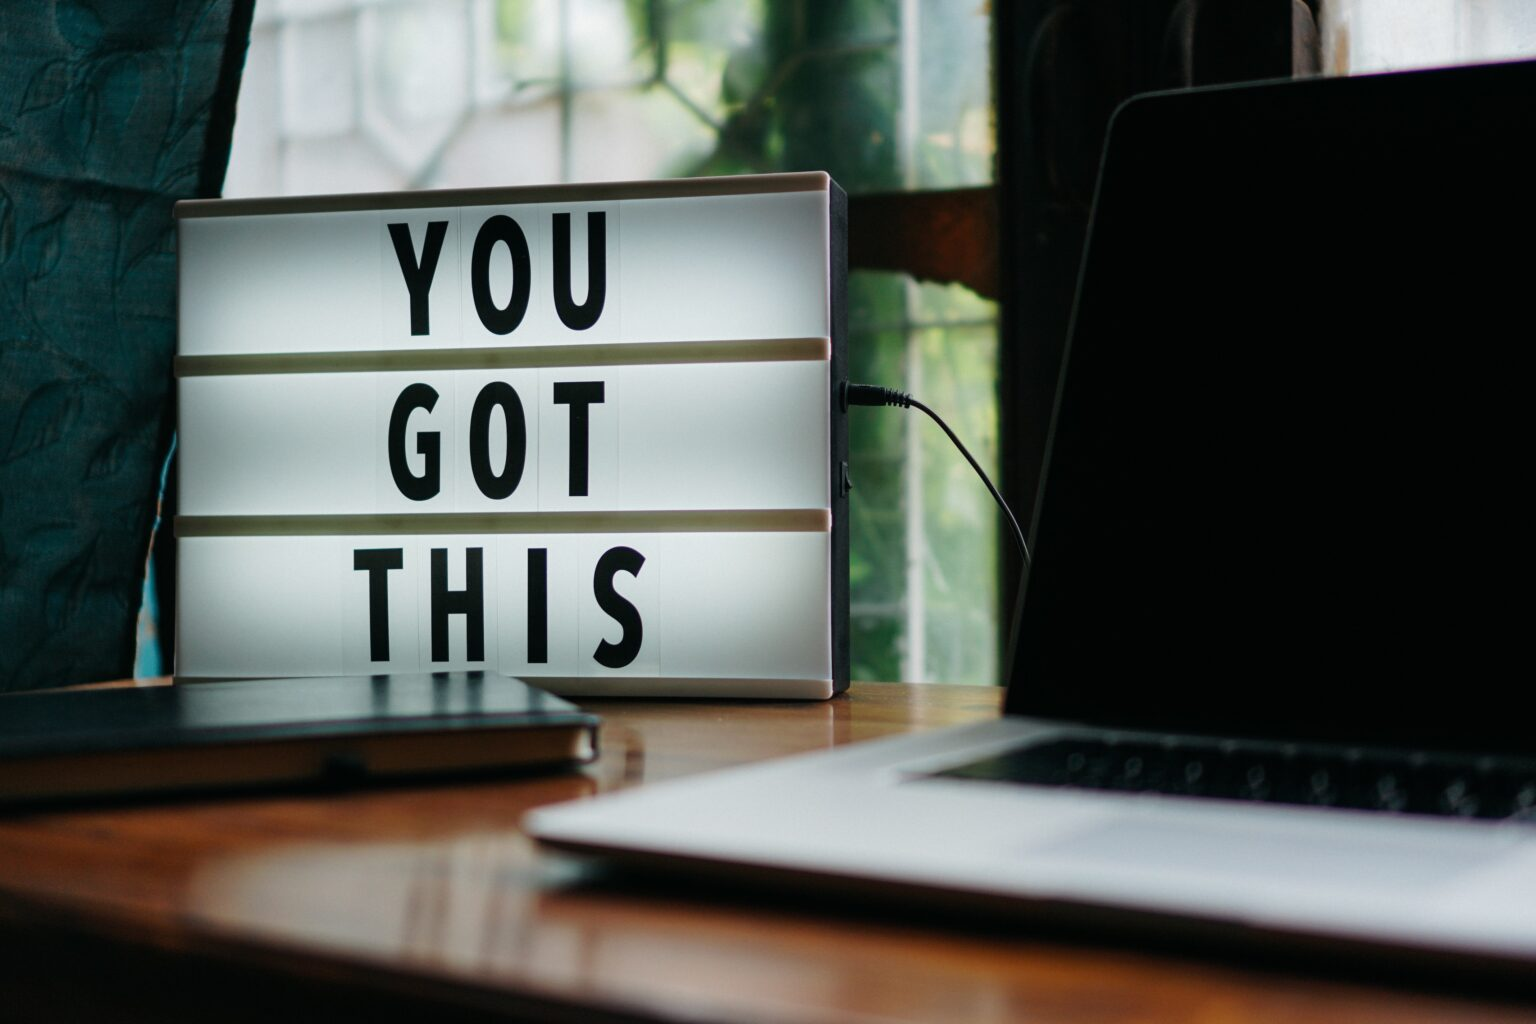 you got this - can improve employee motivation